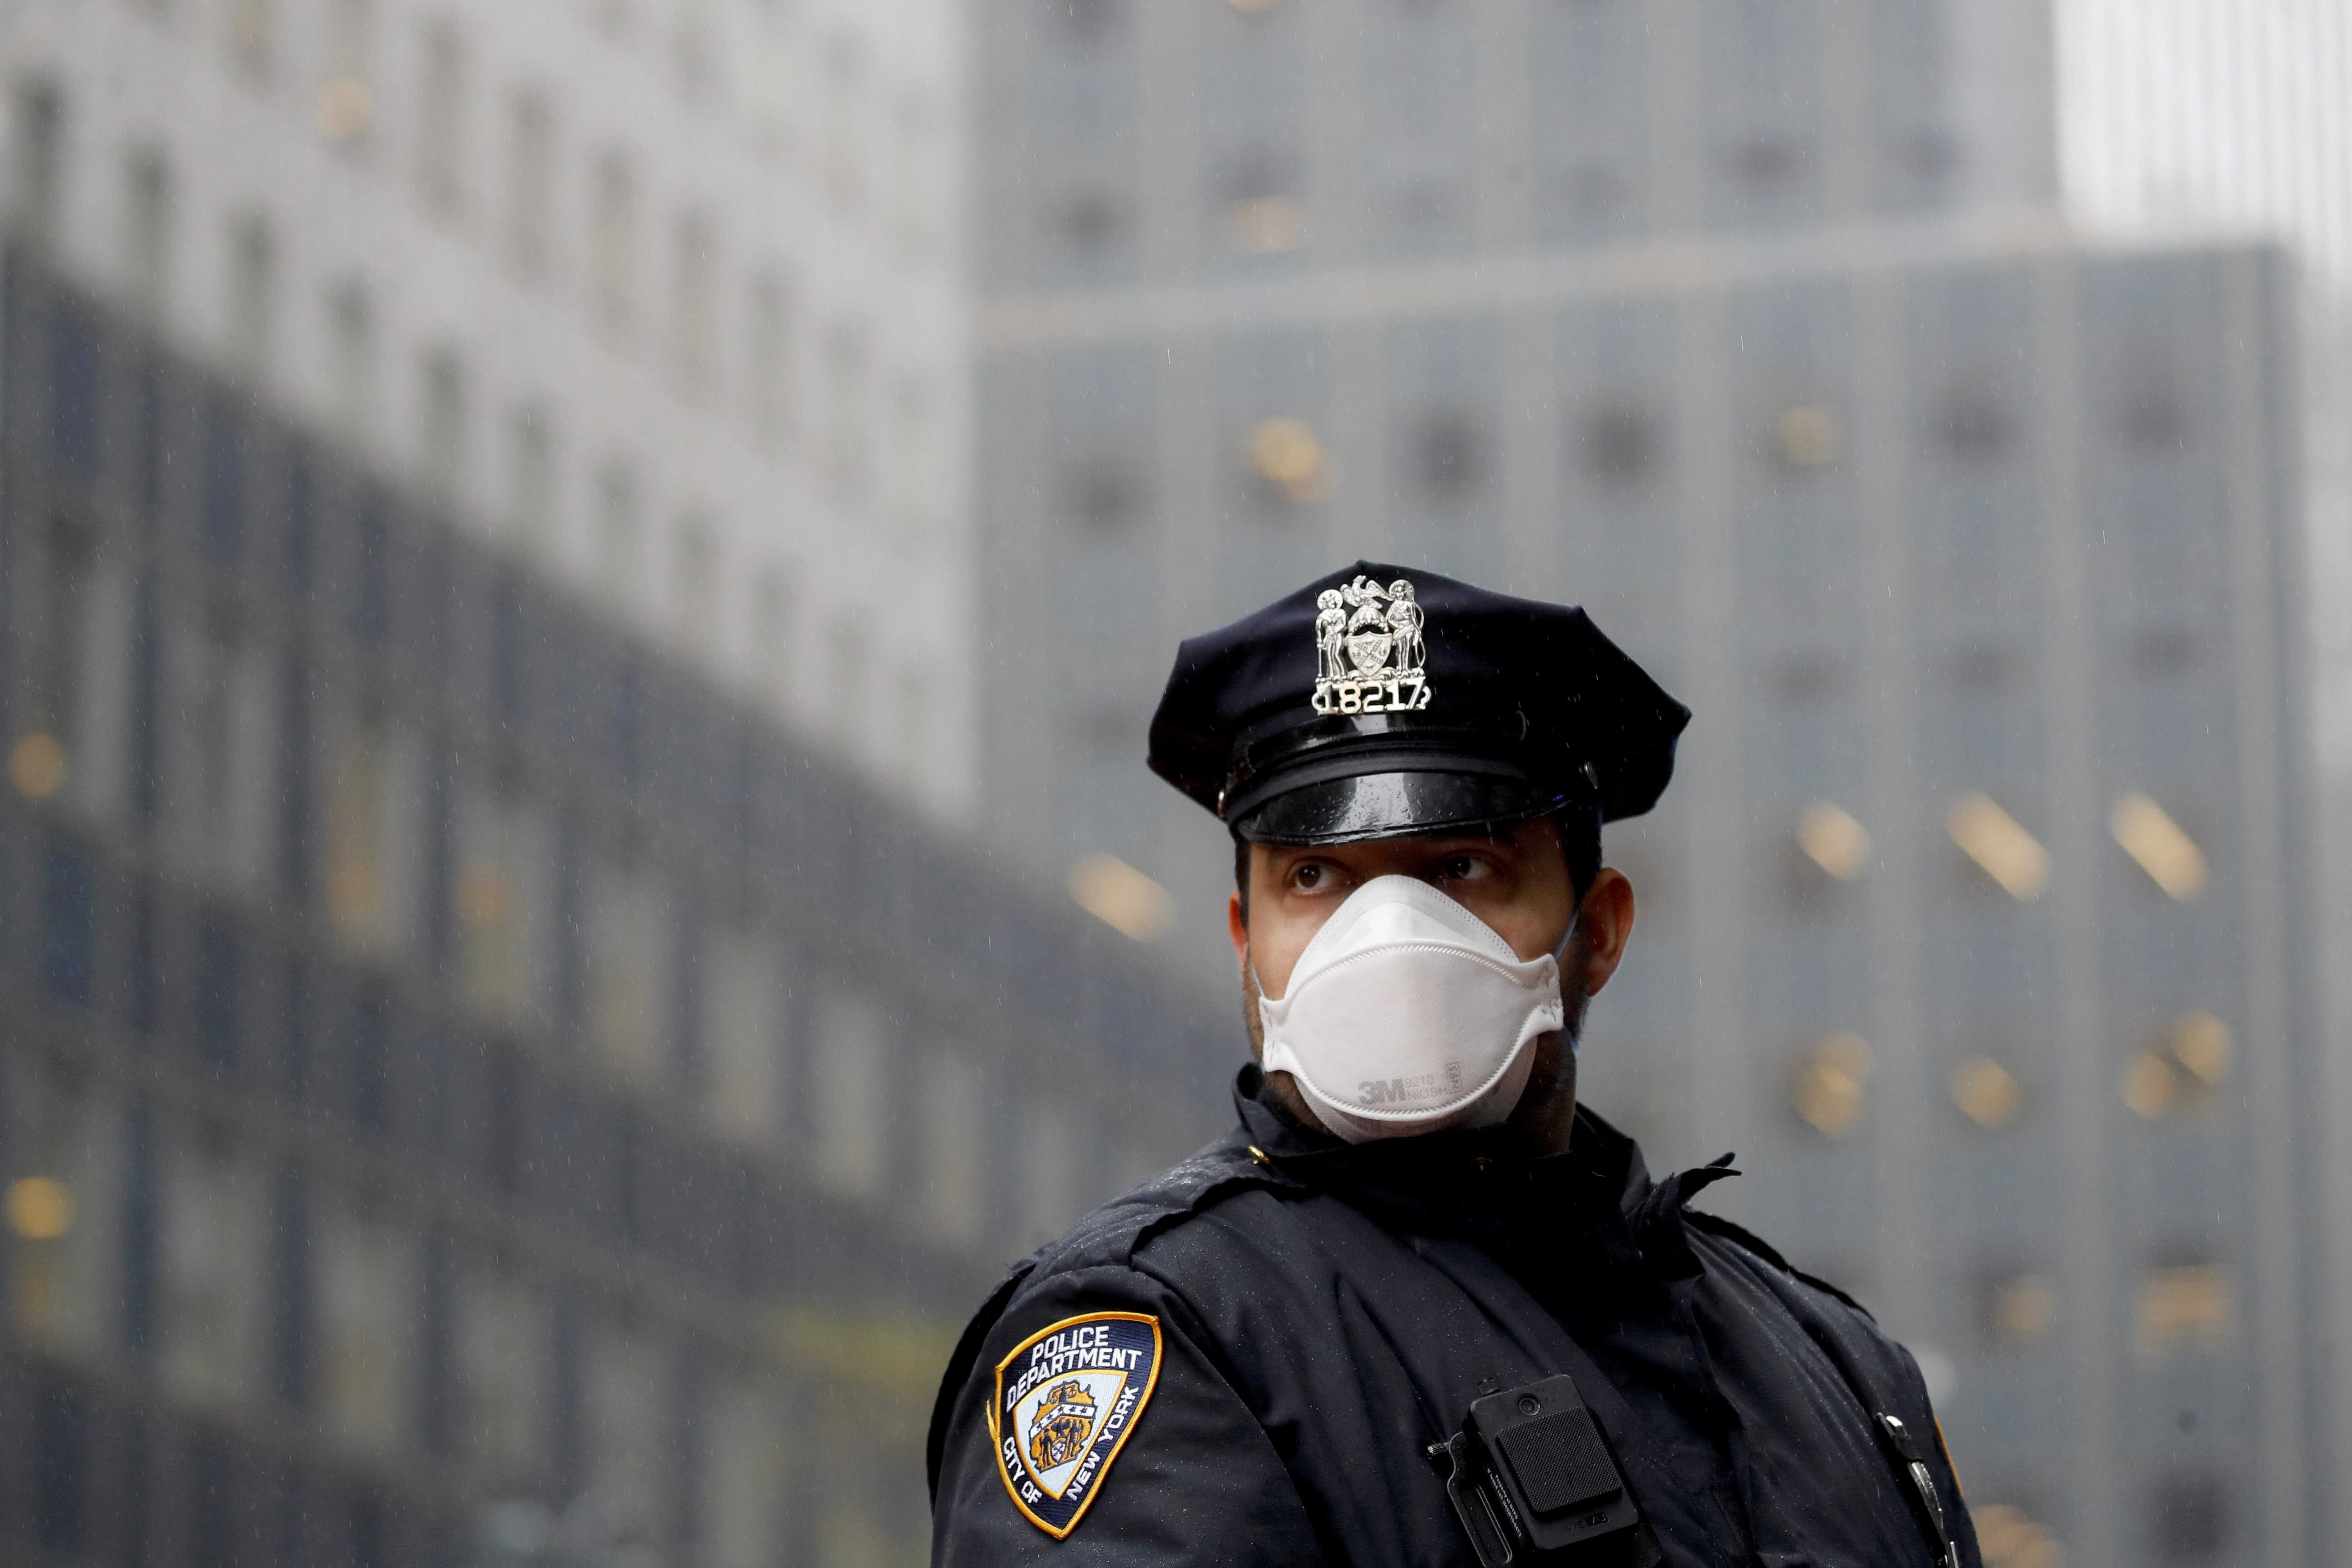 Unvaccinated NYPD officers must wear masks or face discipline